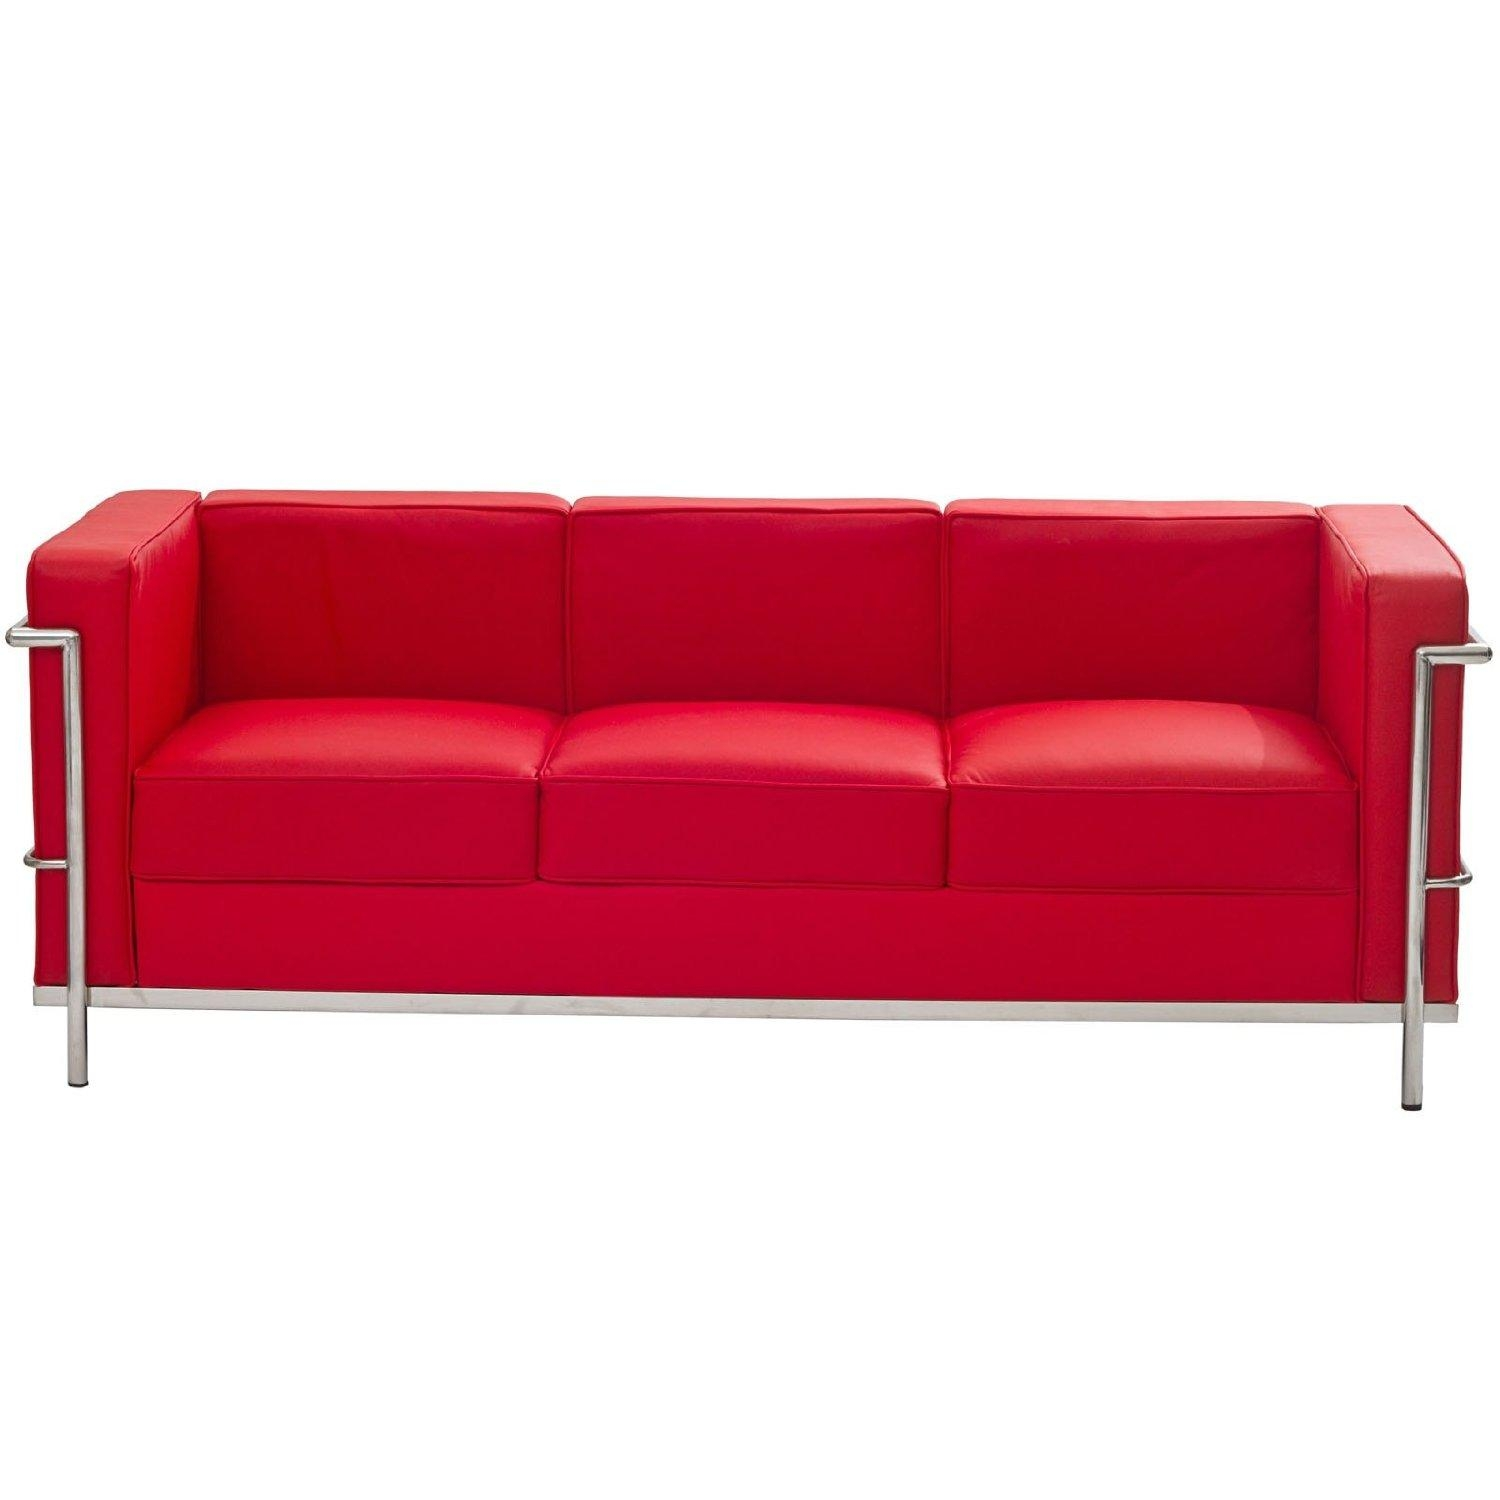 Sofa Pictures | Sofa With Regard To Red Sofa Chairs (Image 20 of 20)